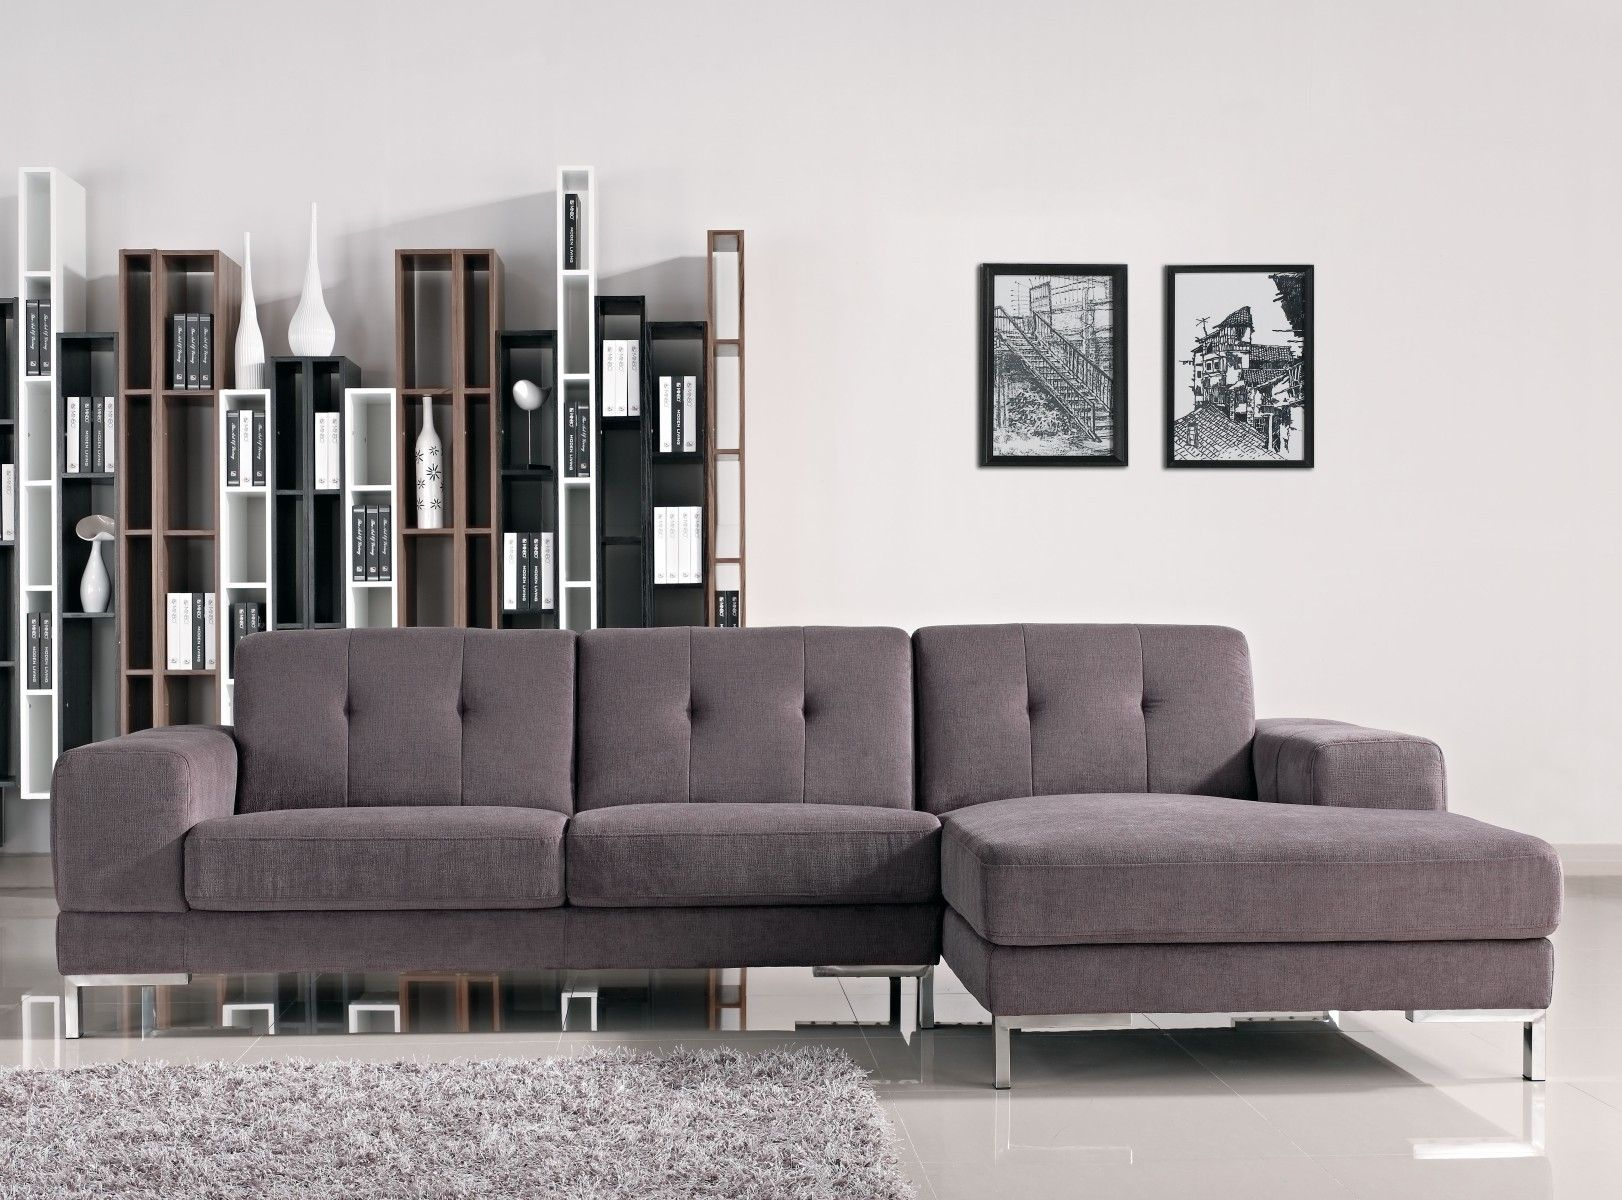 Forli L Shape Gray Fabric Sectional Sofa Sectional sofas